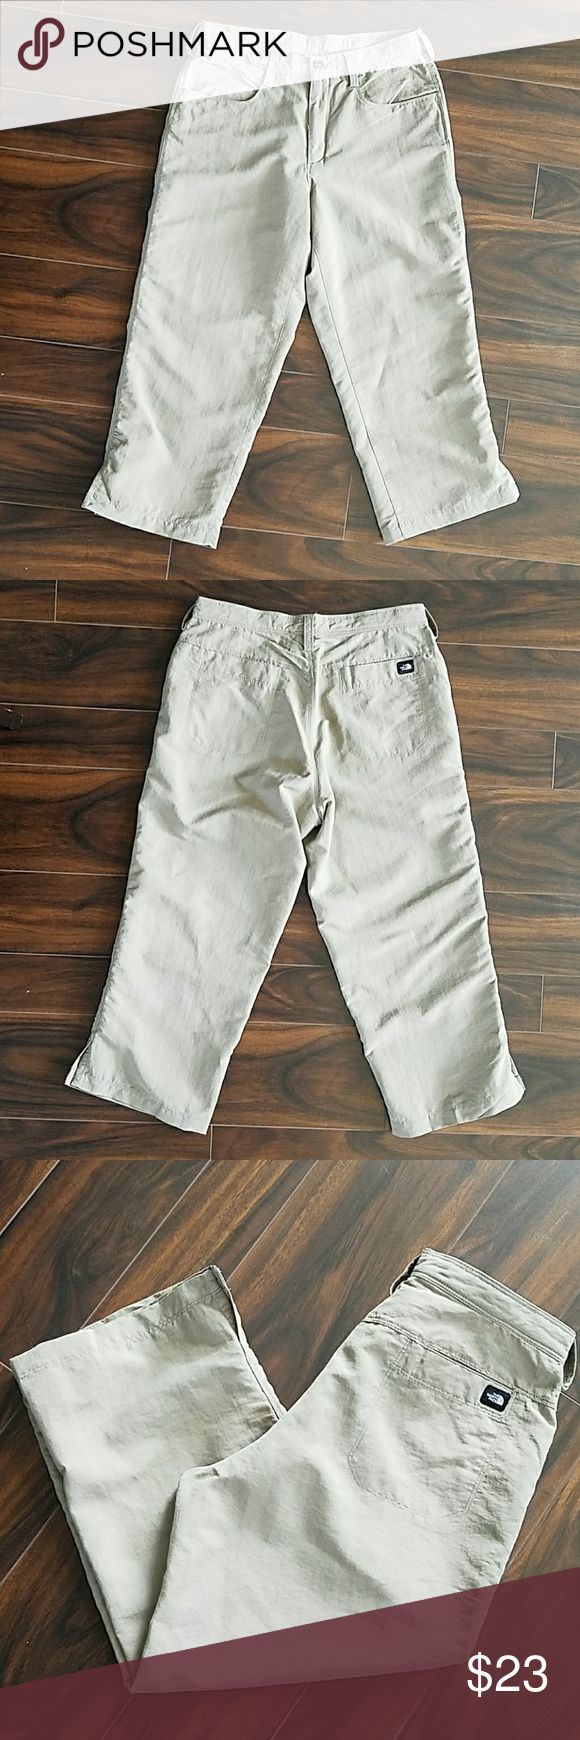 "North Face Khaki Capris North Face Khaki Capris. These are made of 100% nylon for a light and quick drying material. They are comfy and soft, ready for you to take on any summer or spring hike. Size 6, with a 22"" inseam. They have been worn once and are in great shape. North Face Pants Capris"